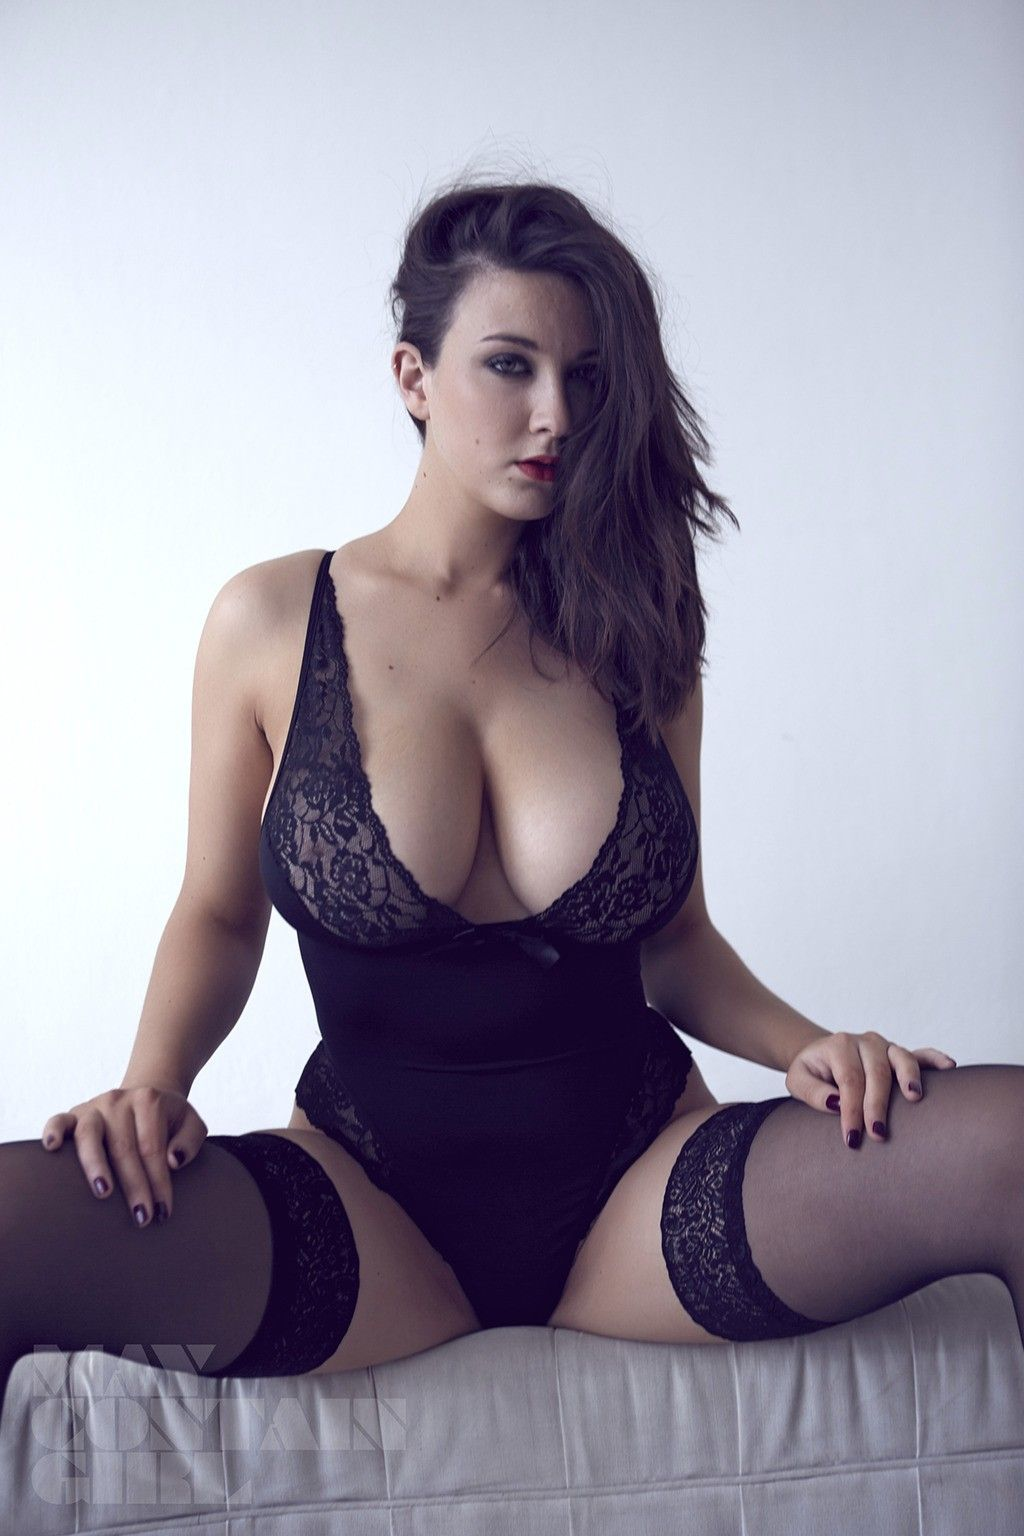 Images Joey Fisher nudes (94 photos), Topless, Hot, Selfie, in bikini 2015